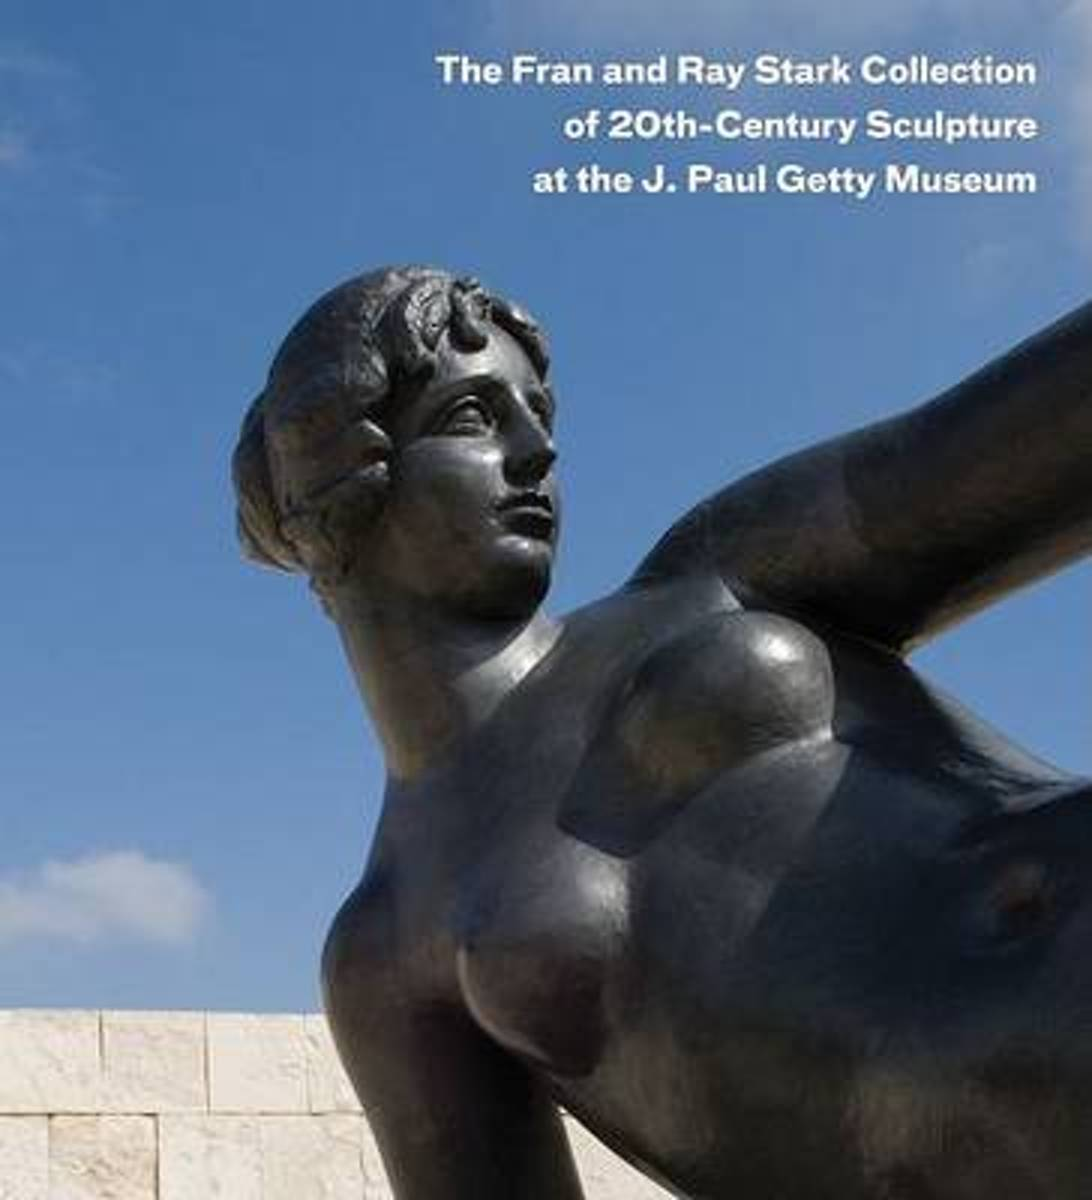 The Fran and Ray Stark Collection of 20th Century Sculpture at the J. Paul Getty Museum